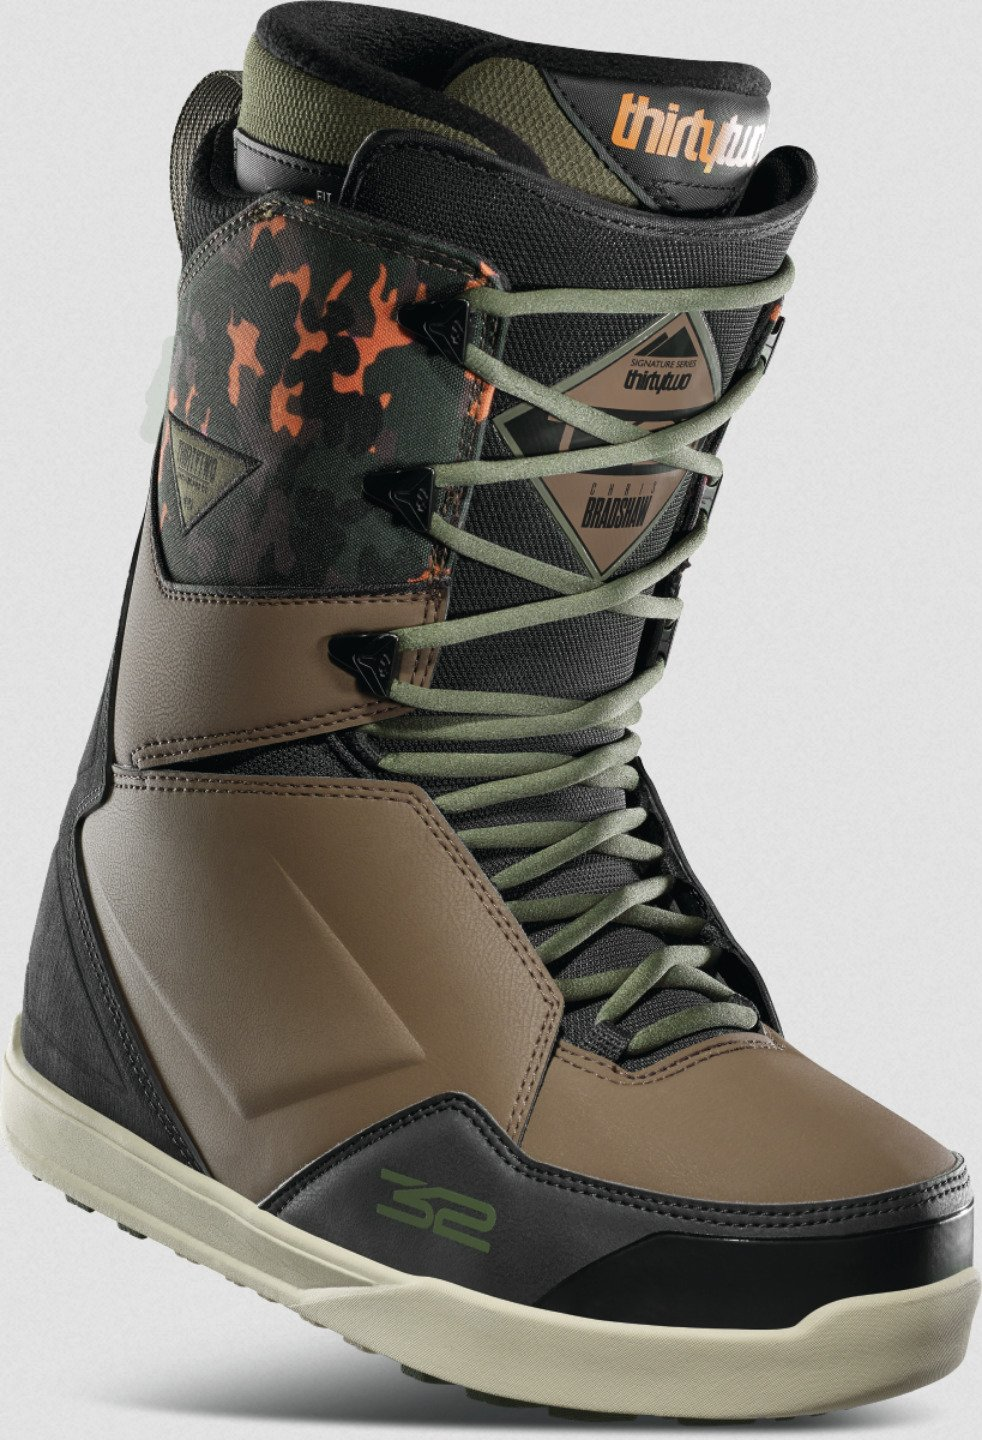 2021 Thirtytwo Lashed Bradshaw Men's Snowboard Boots